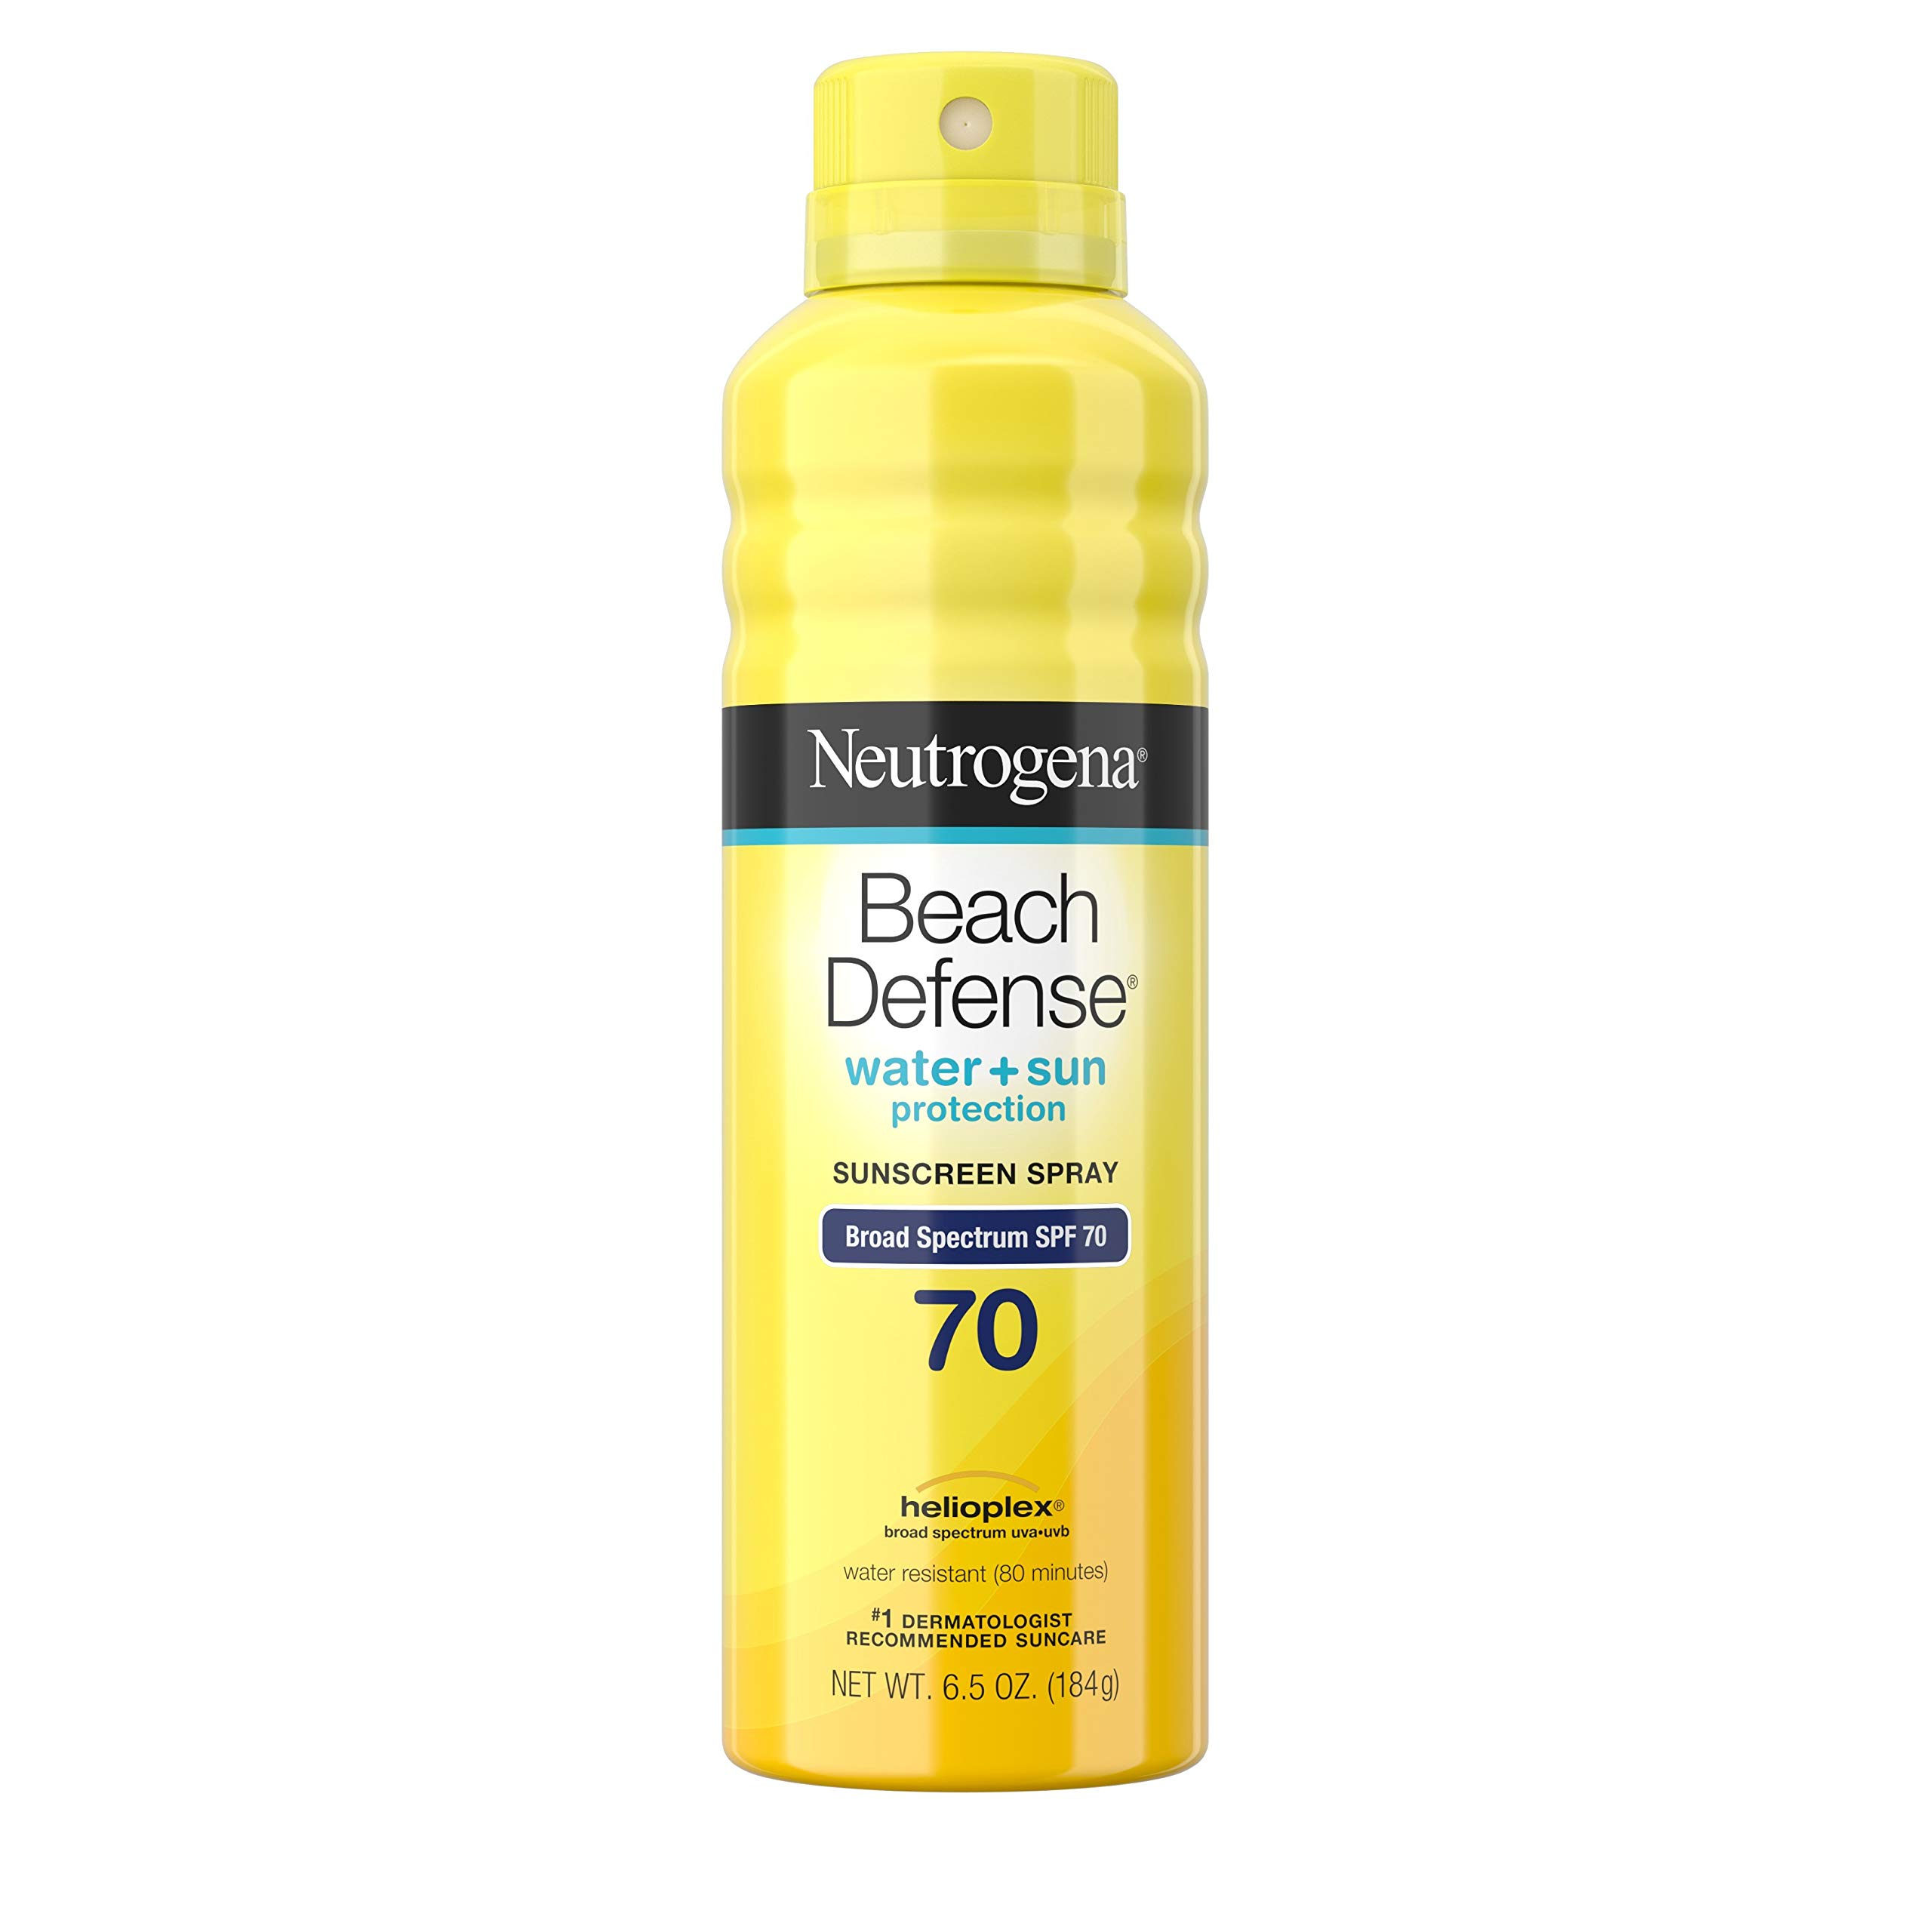 Neutrogena Beach Defense Body Spray Sunscreen with Broad Spectrum SPF 70, Water-Resistant and Oil-Free Sun Protection, 6.5 oz by Neutrogena